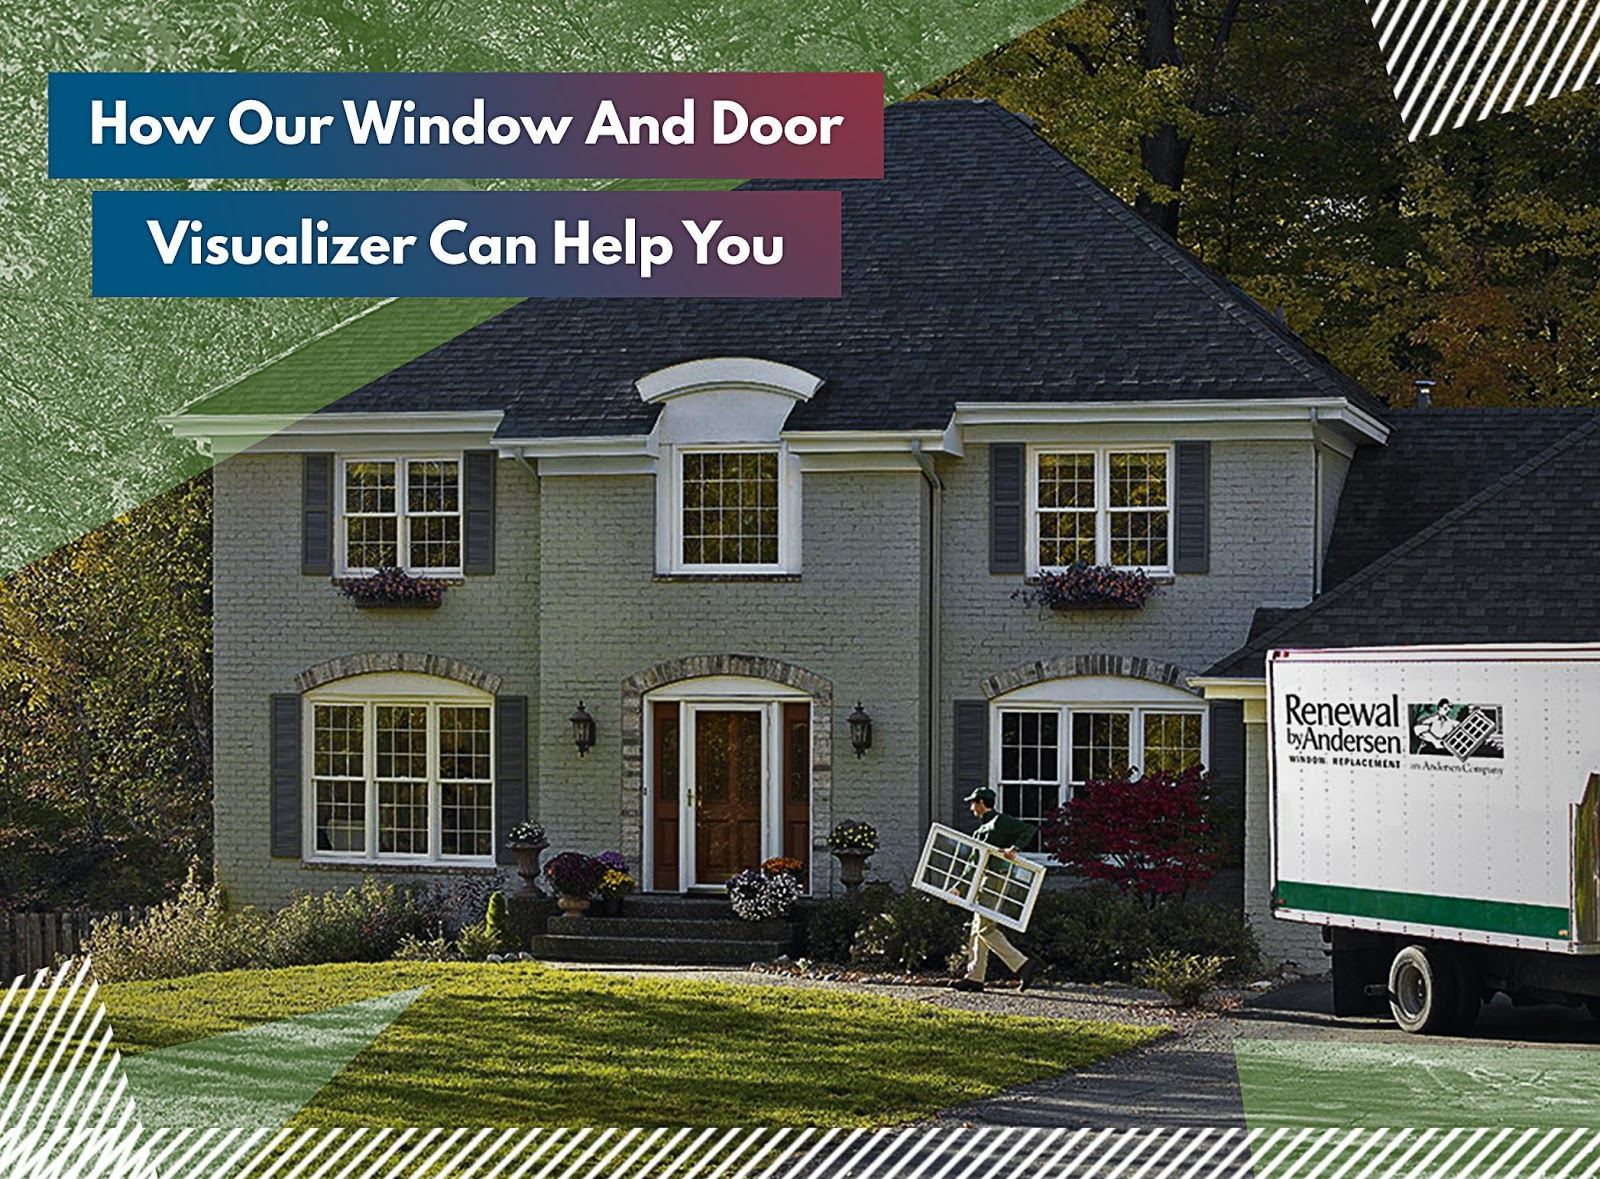 how our window and door visualizer can help you